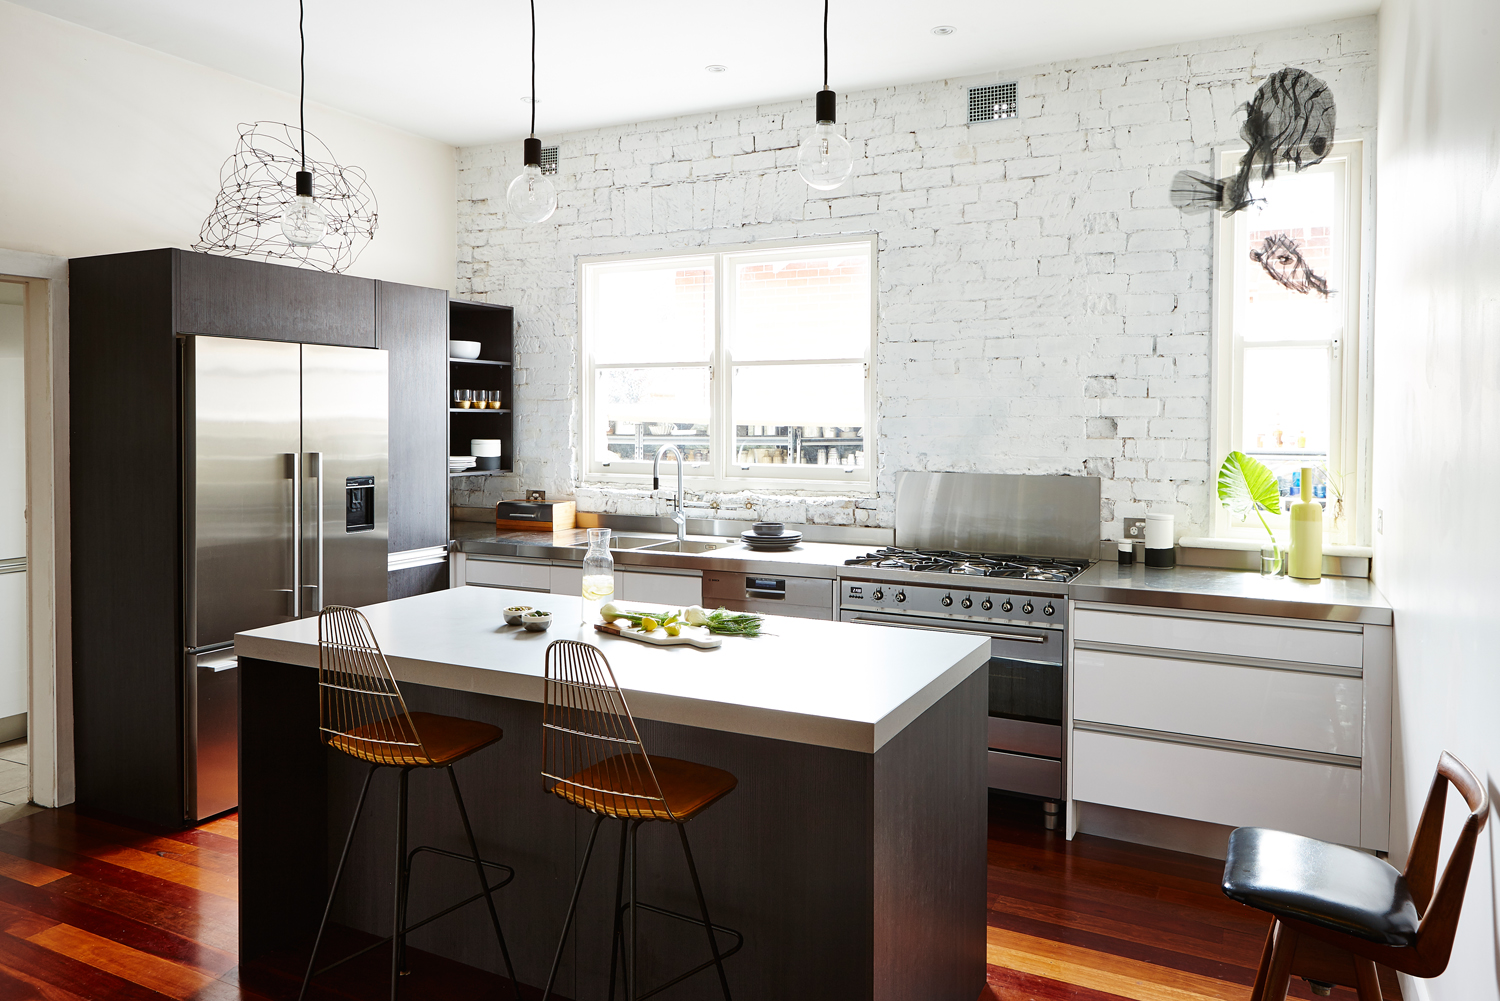 HaberfieldKitchen_02-Expressing your style